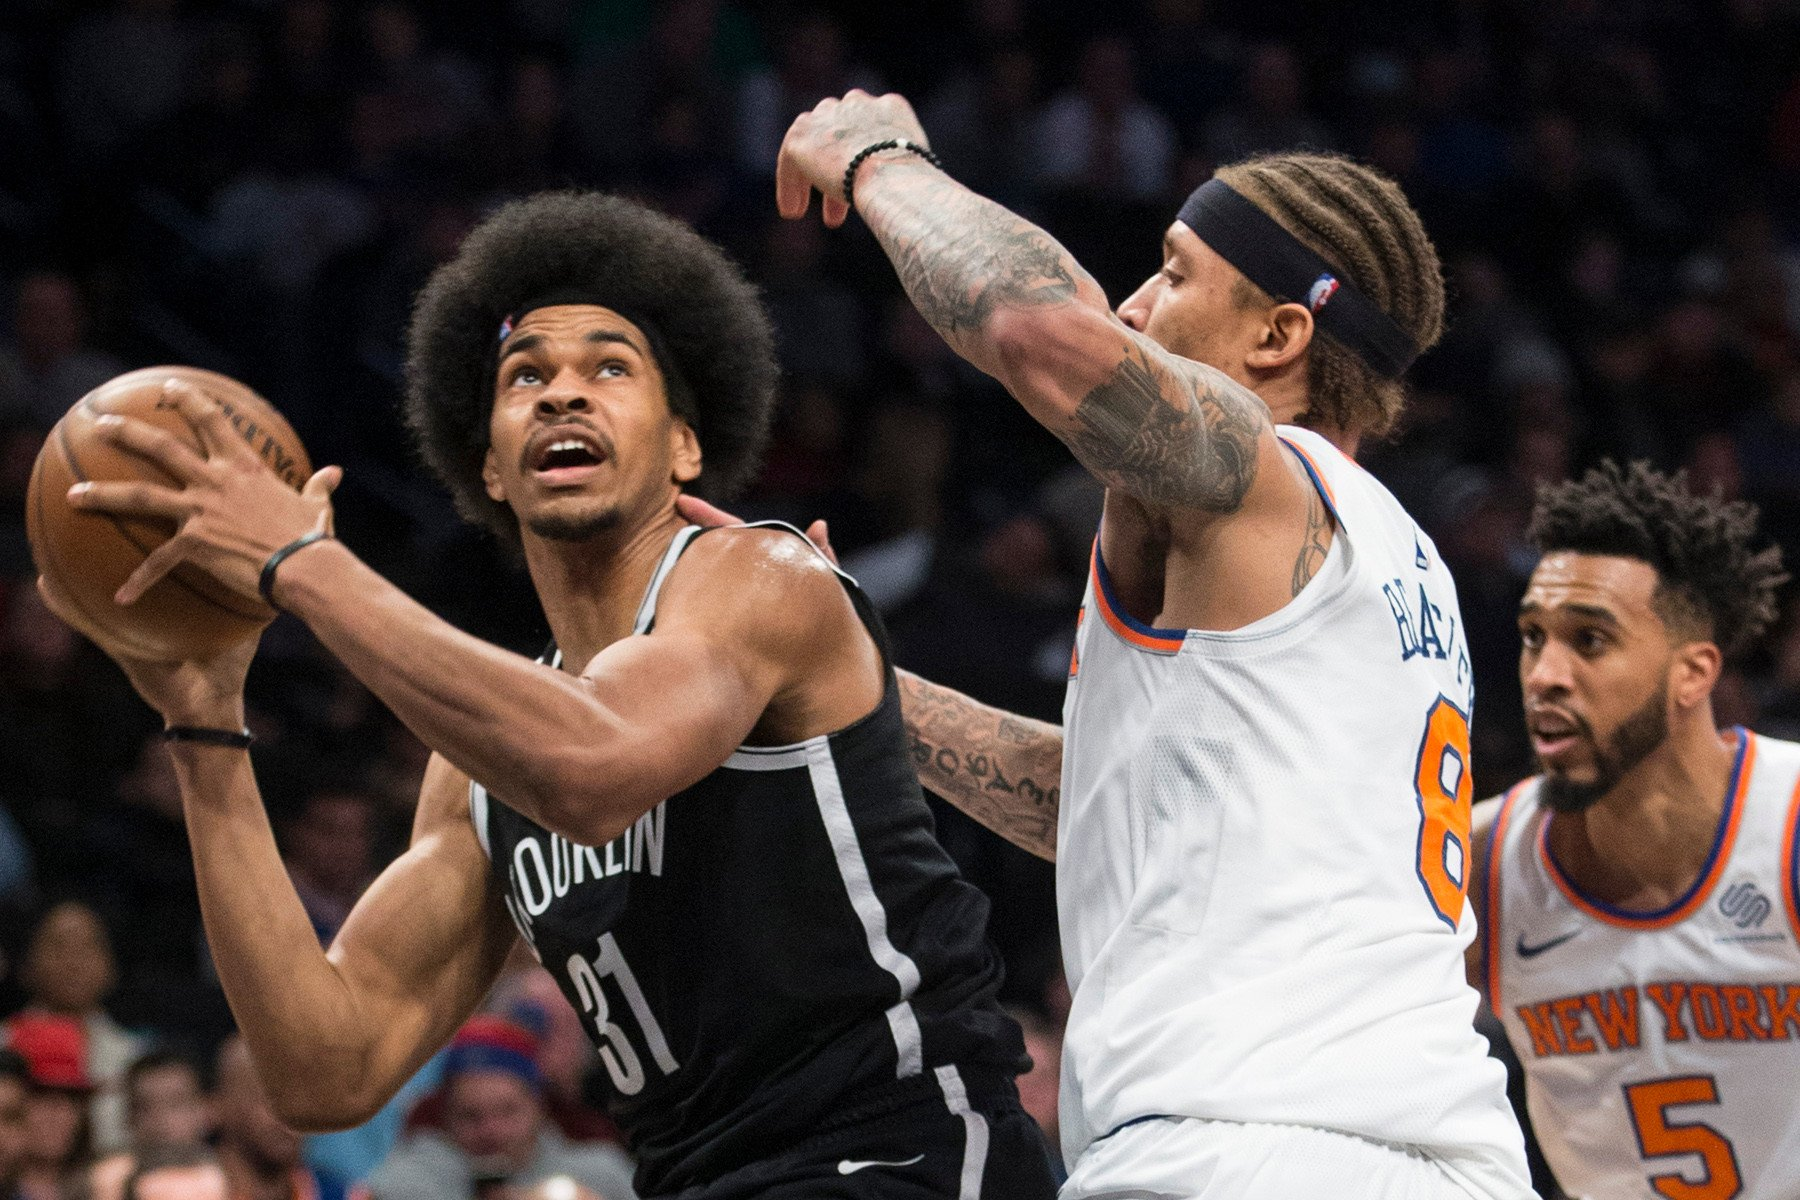 Nets' outside shooting let them down against bigger Knicks